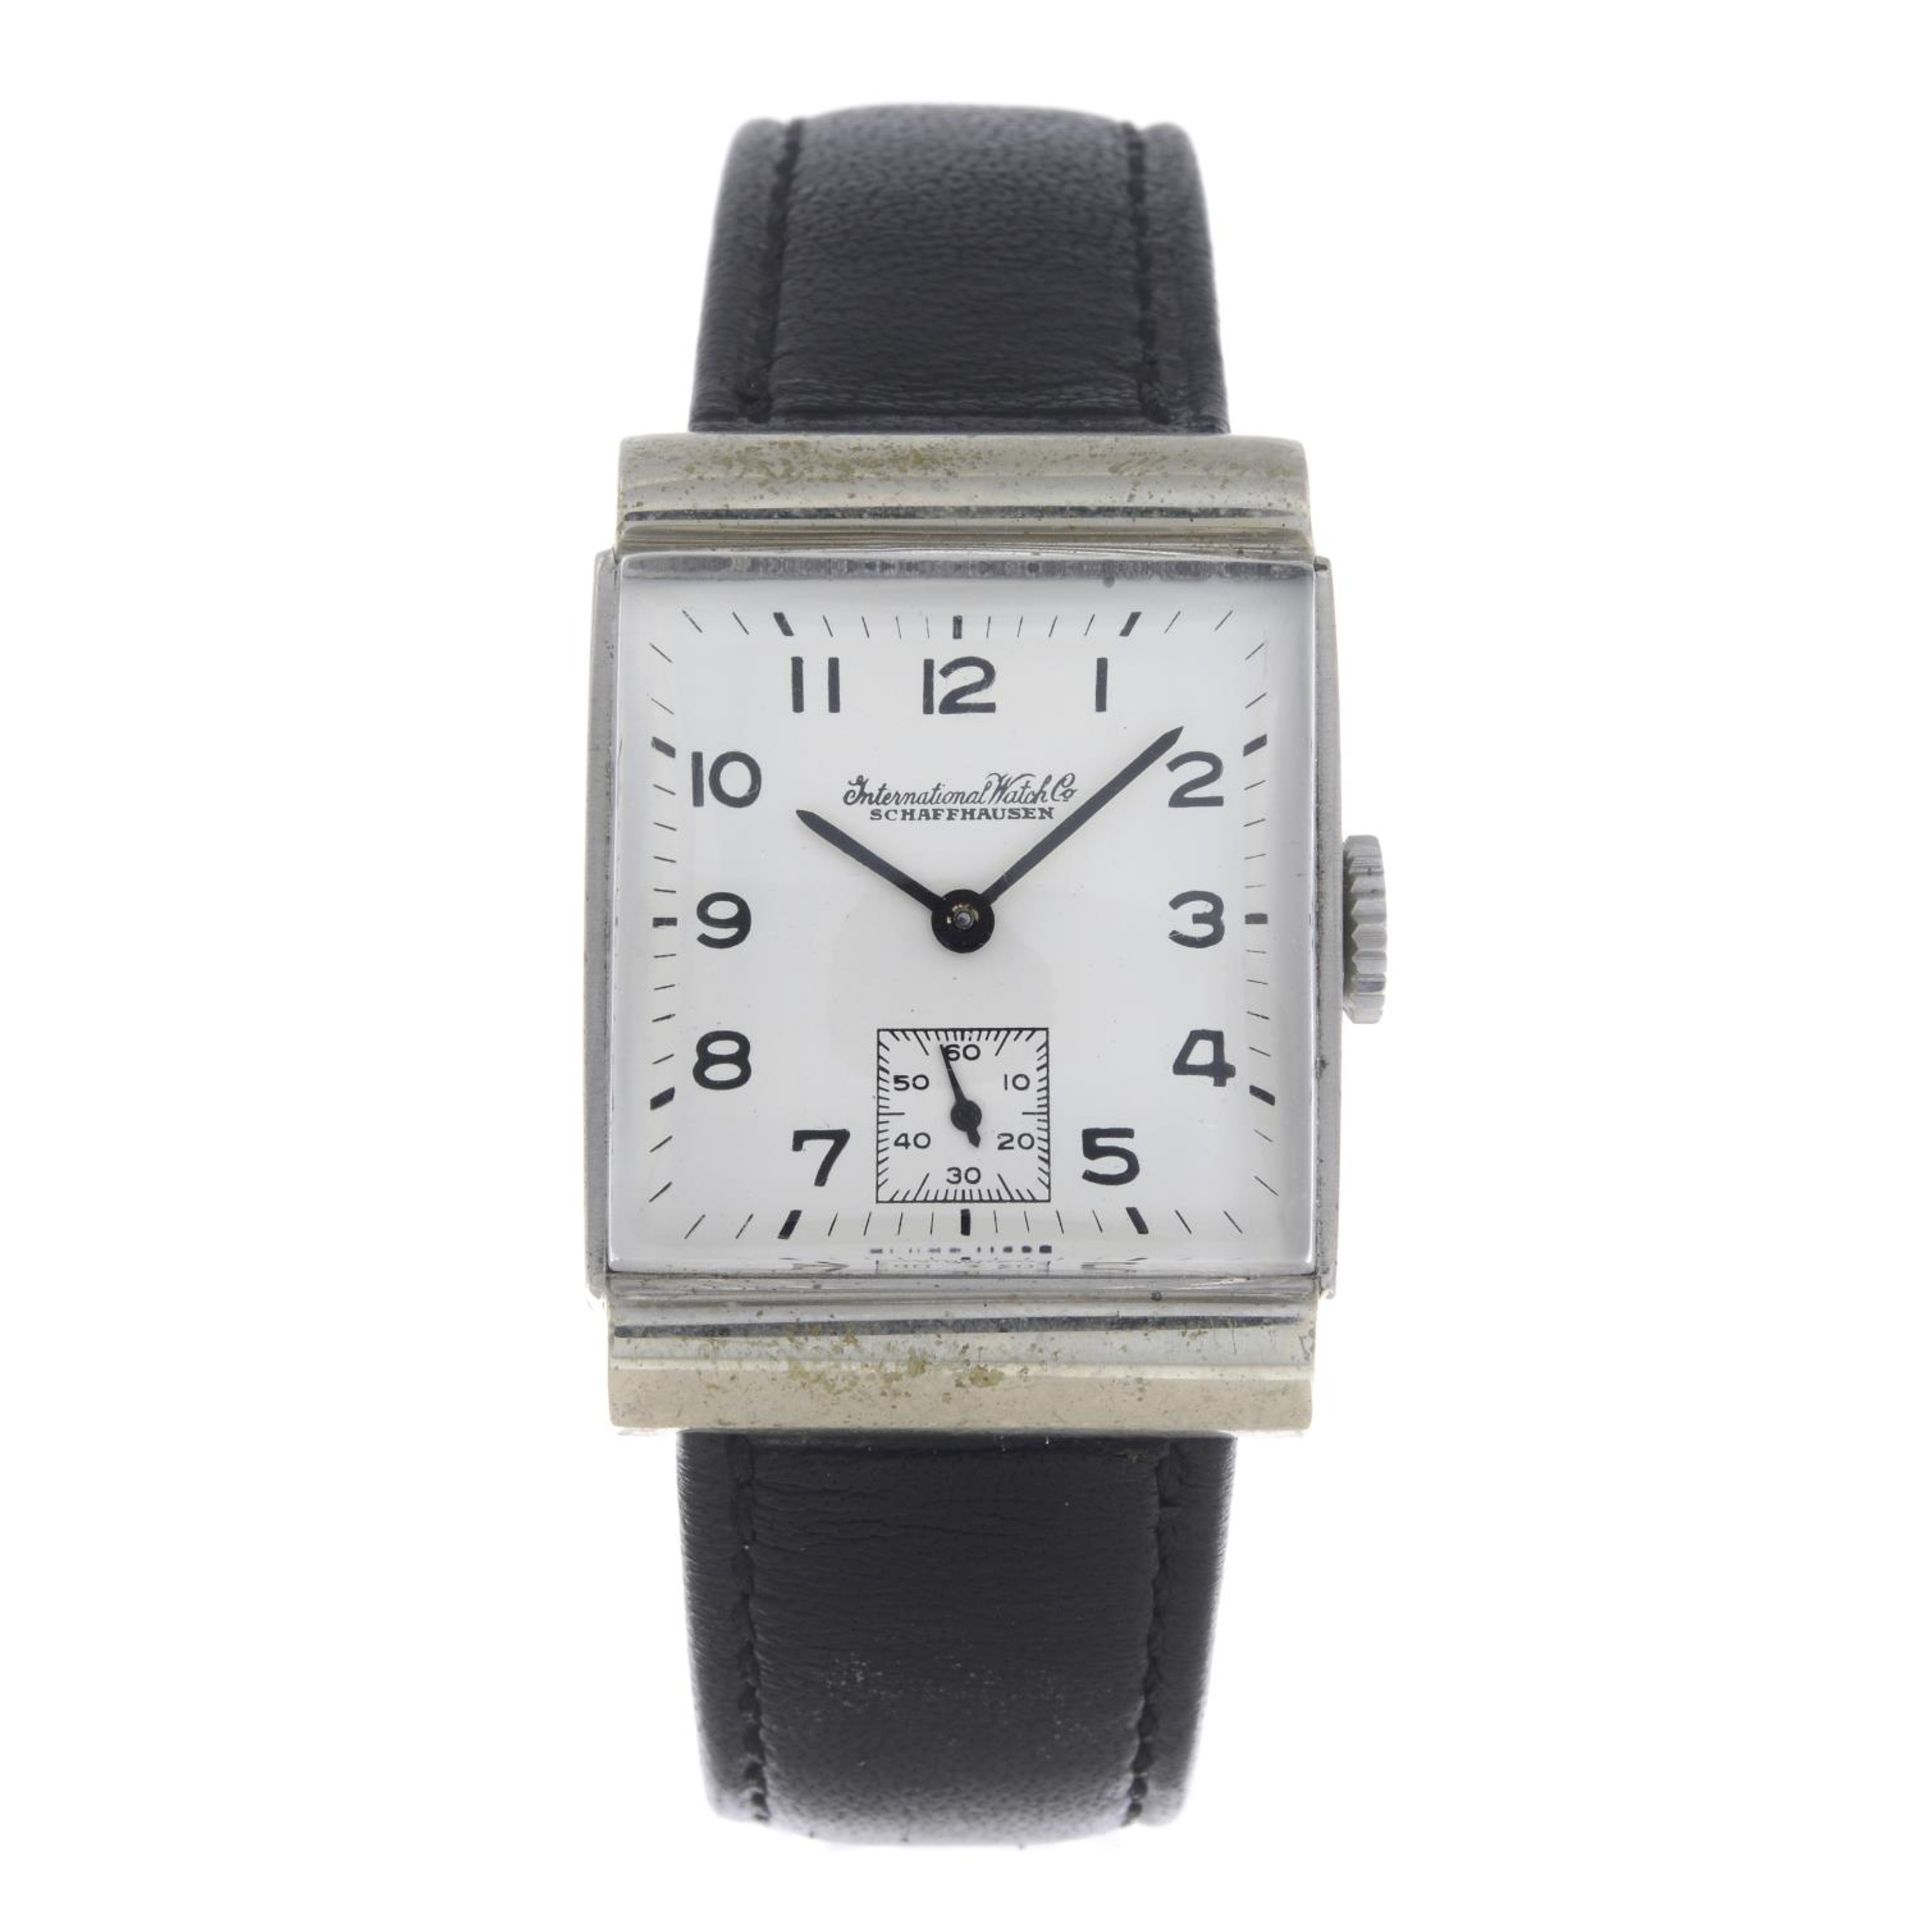 Los 34 - IWC - a gentleman's wrist watch.